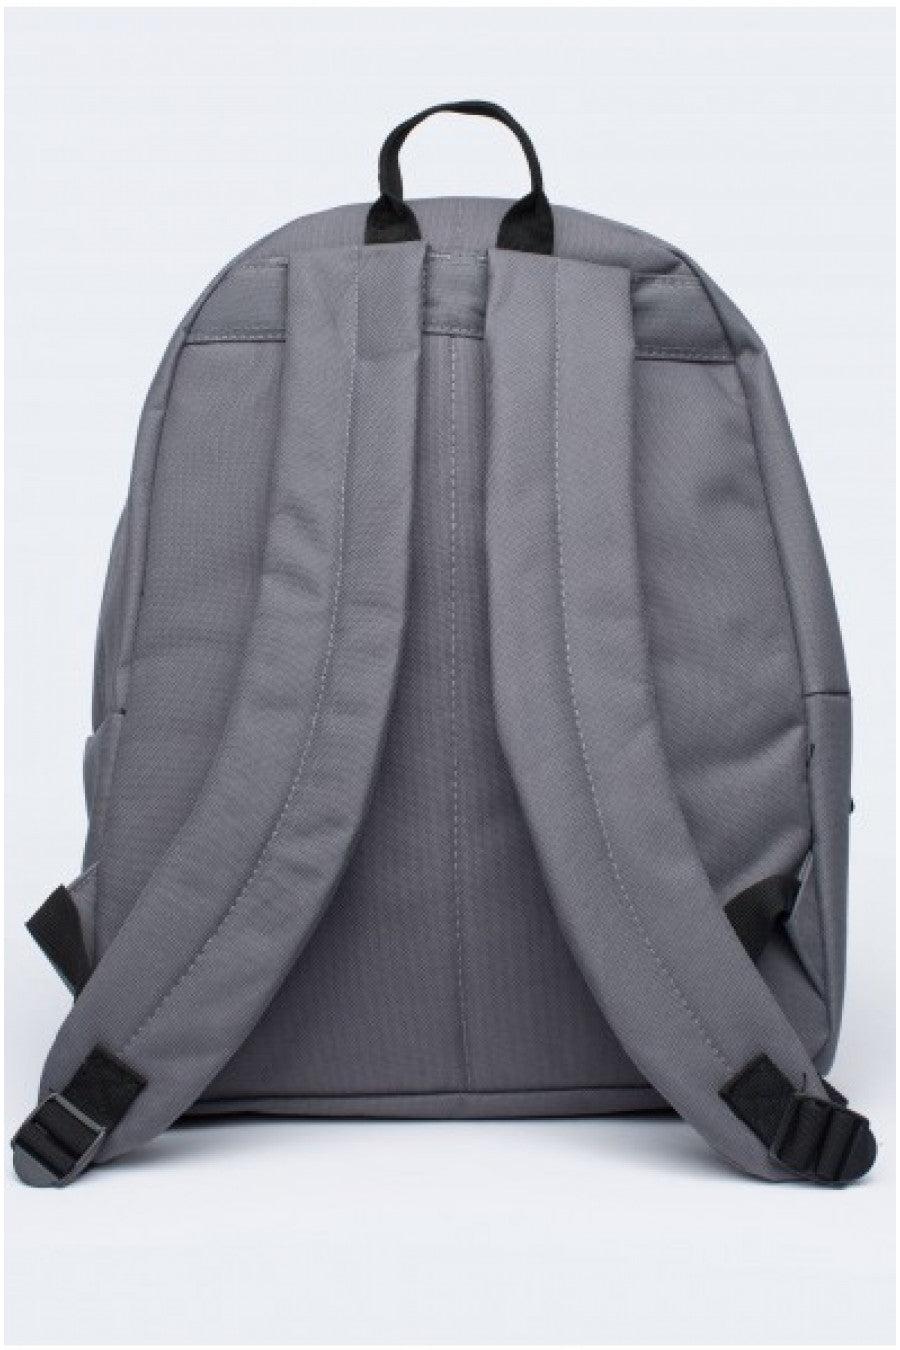 HYPE BADGE  CHARCOAL  BACKPACK